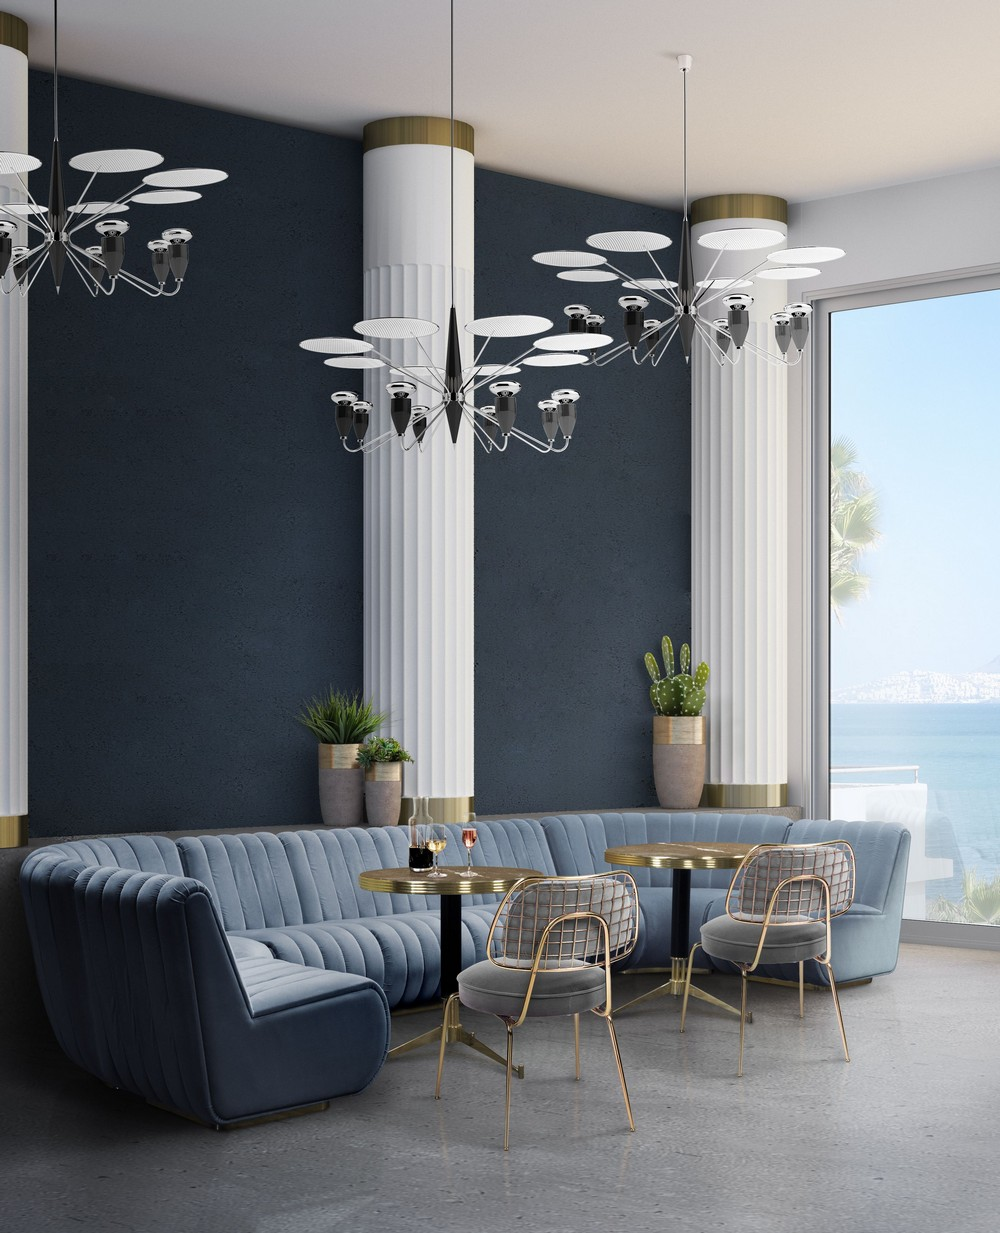 The Top 6 Trending Dining Room Styles dining room ideas The Top 6 Trending Dining Room Ideas architetcural standout